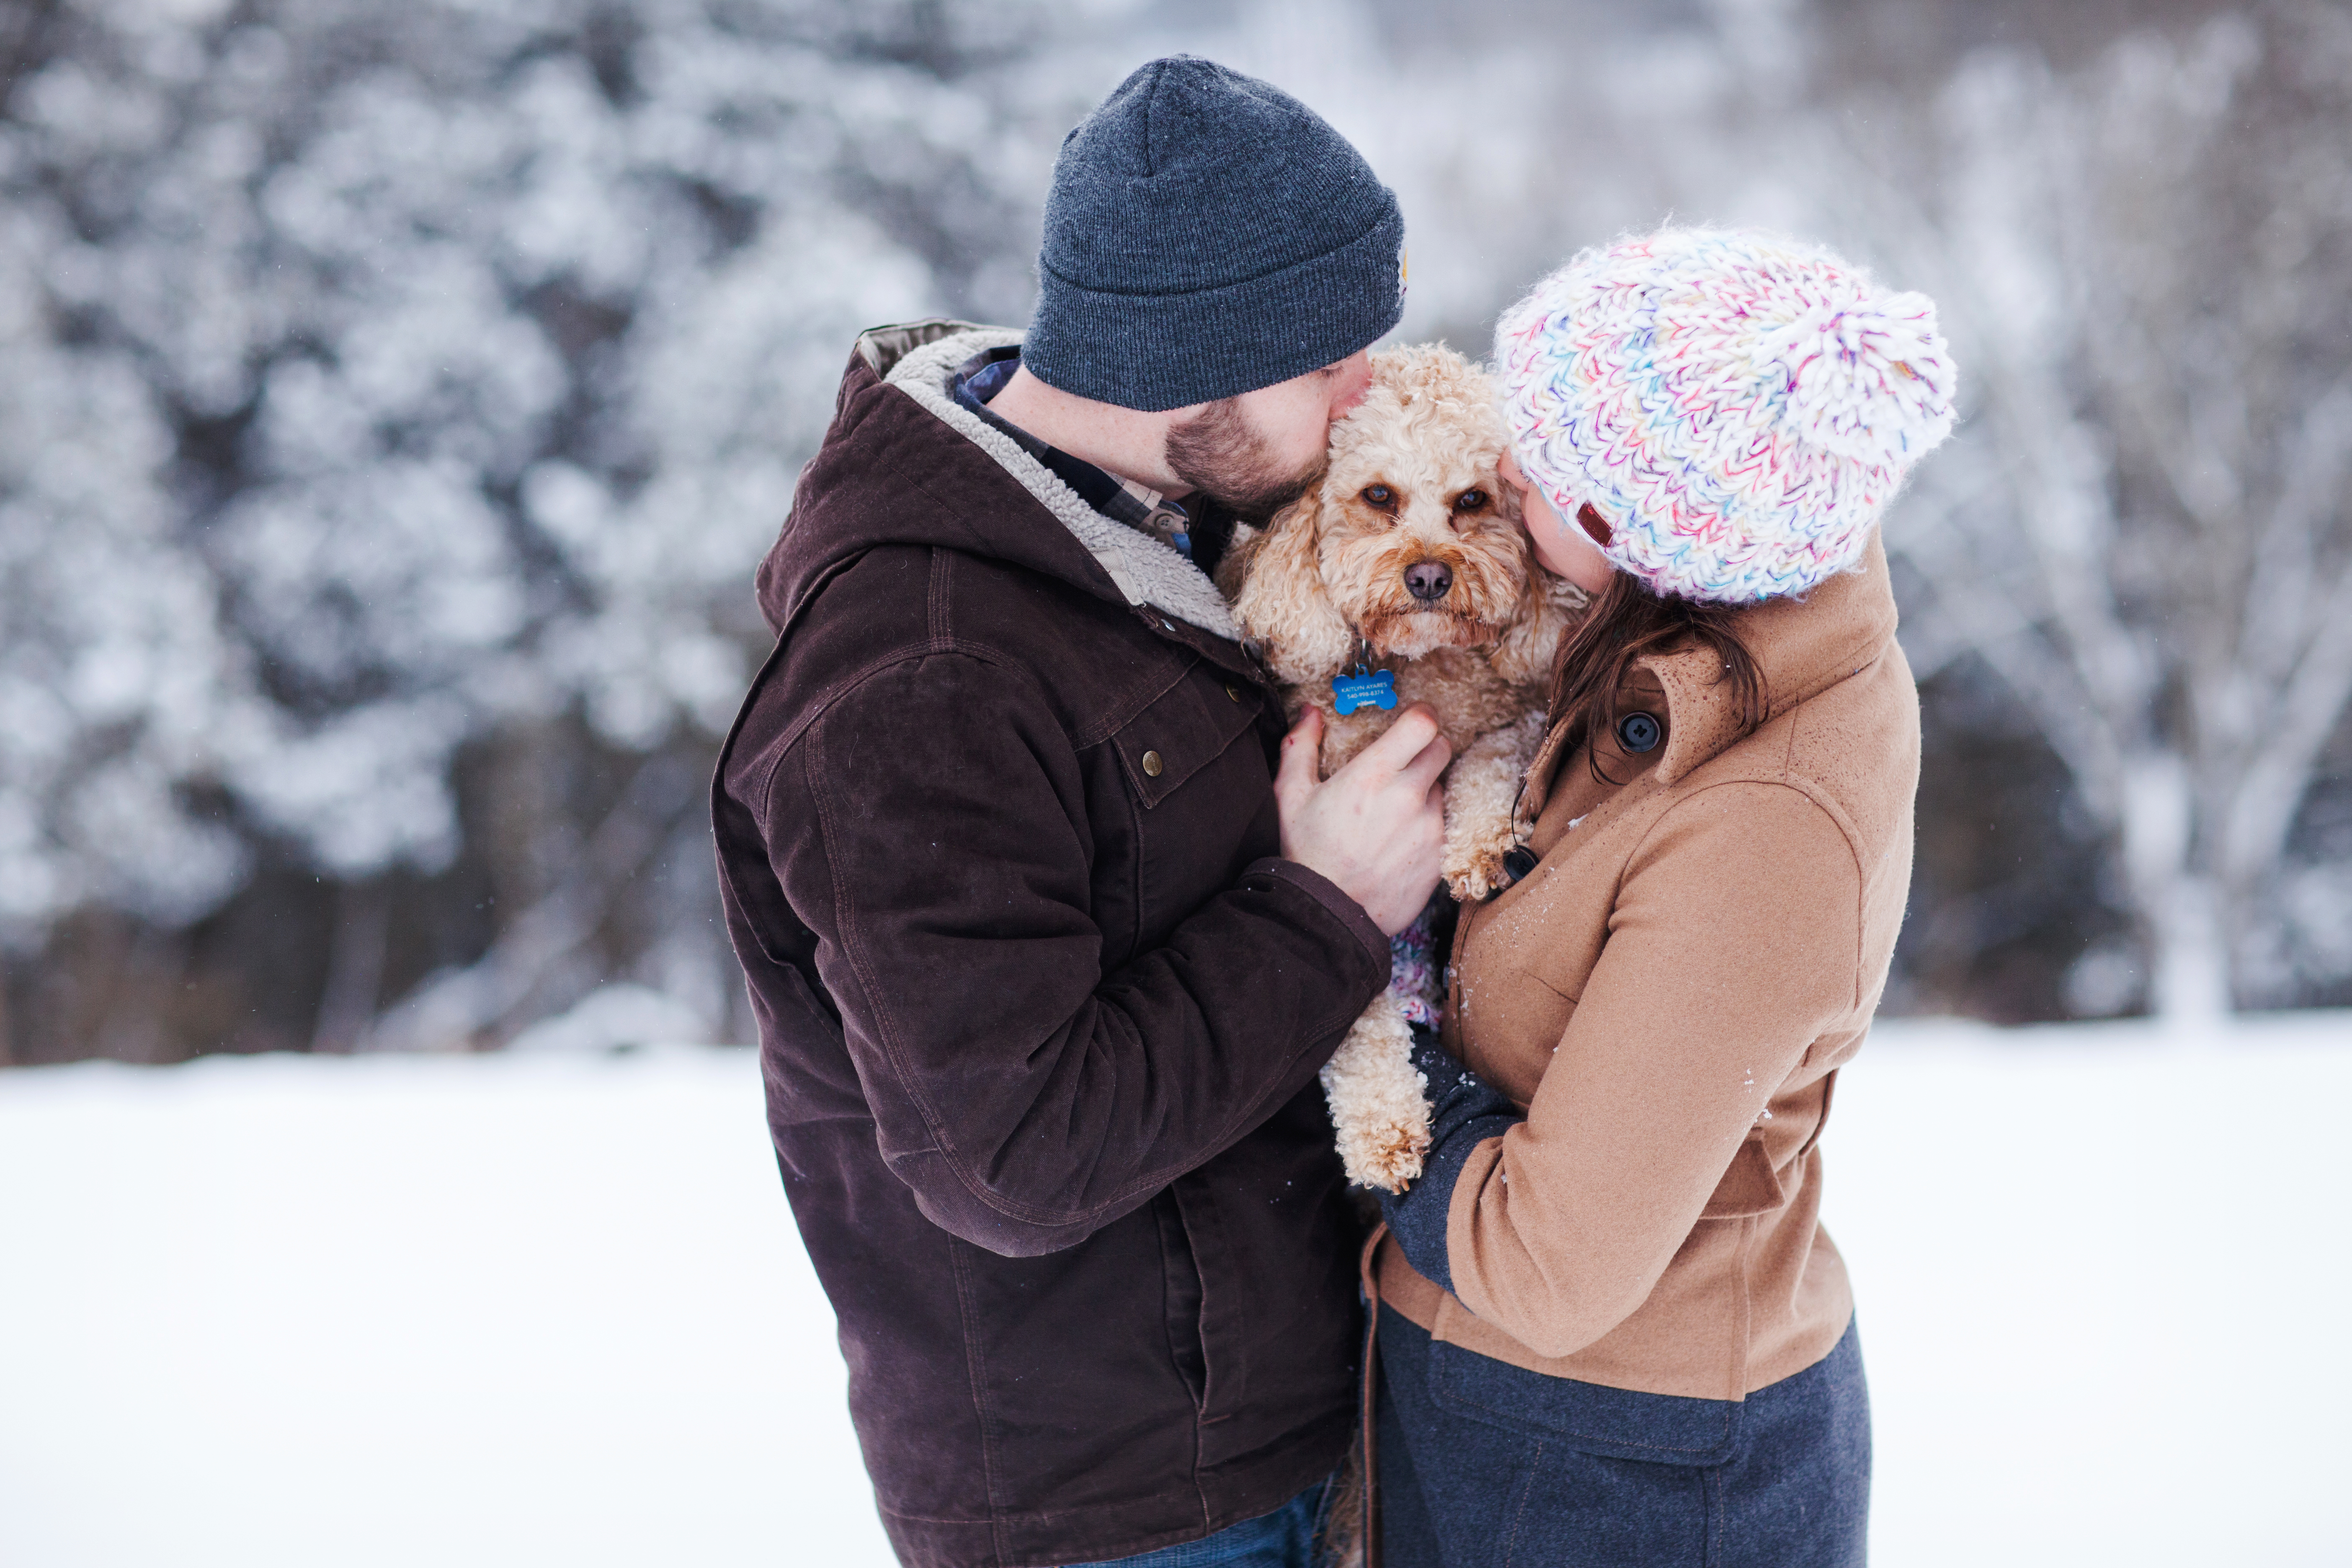 Kaitlyn & Mike | A Snow Day Engagement Session